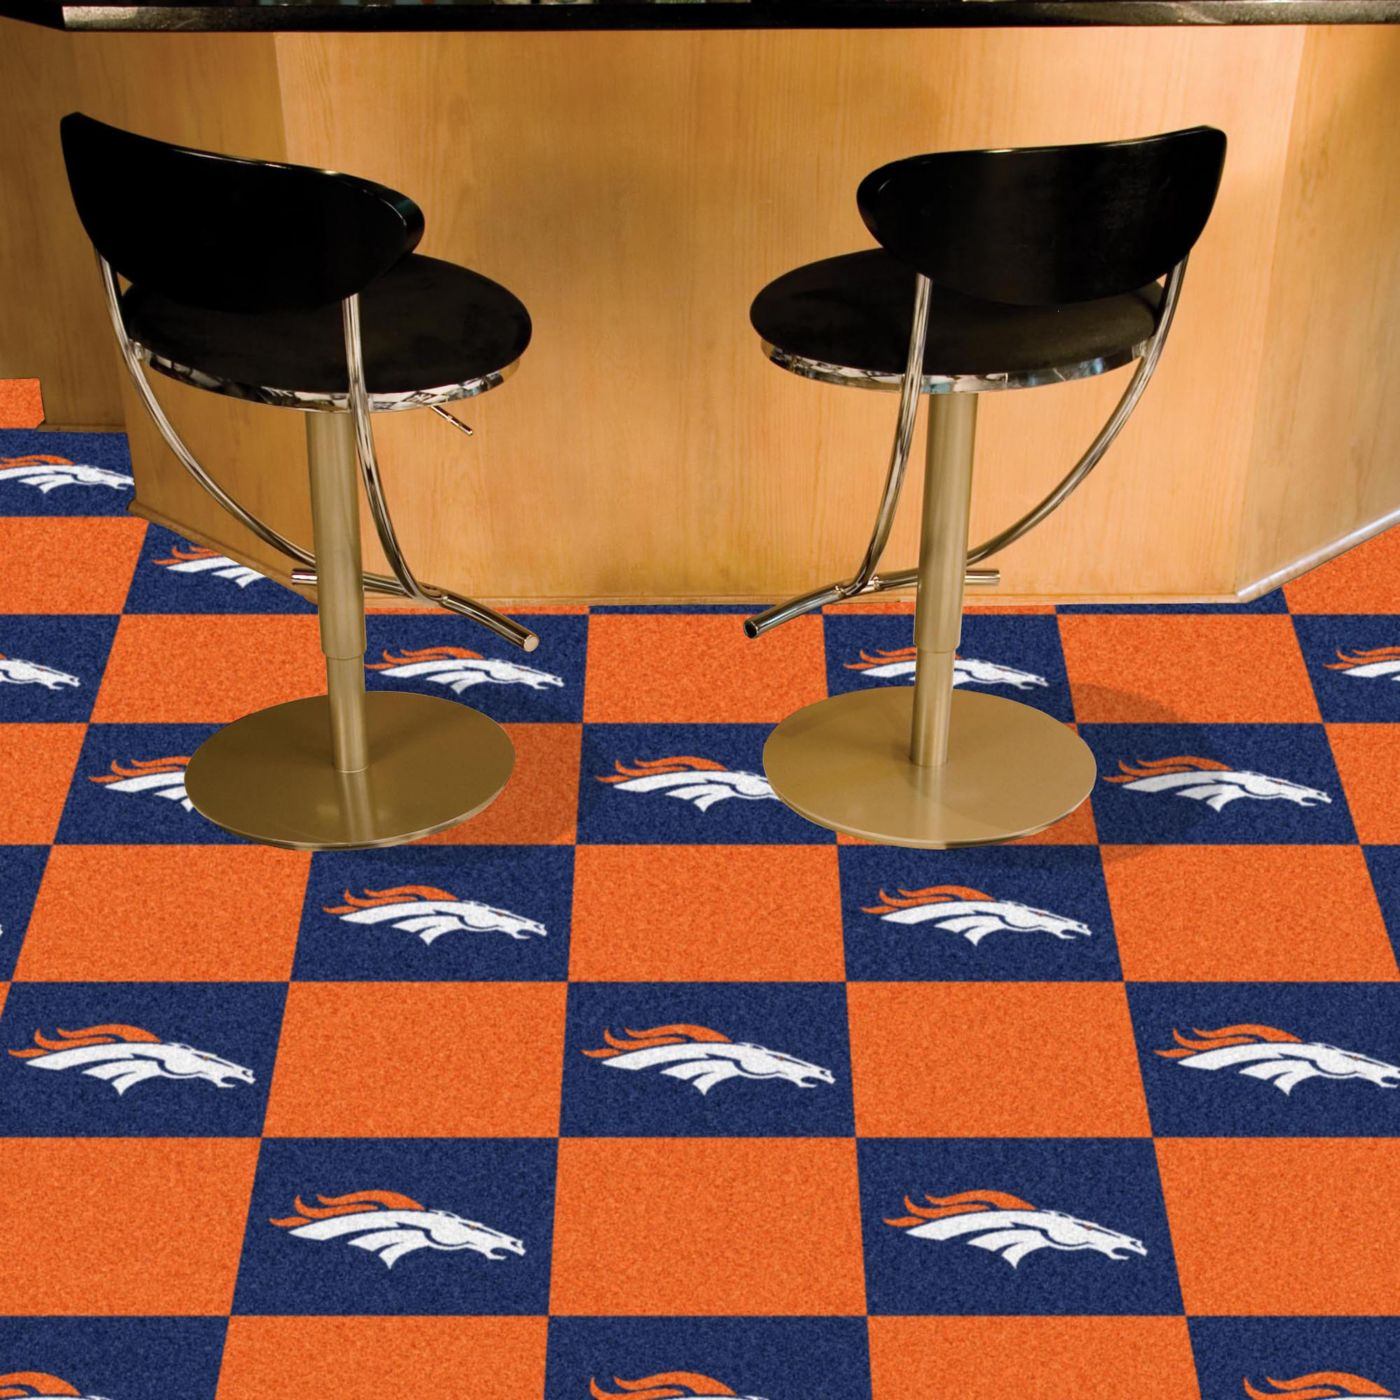 FANMATS Denver Broncos Team Carpet Tiles